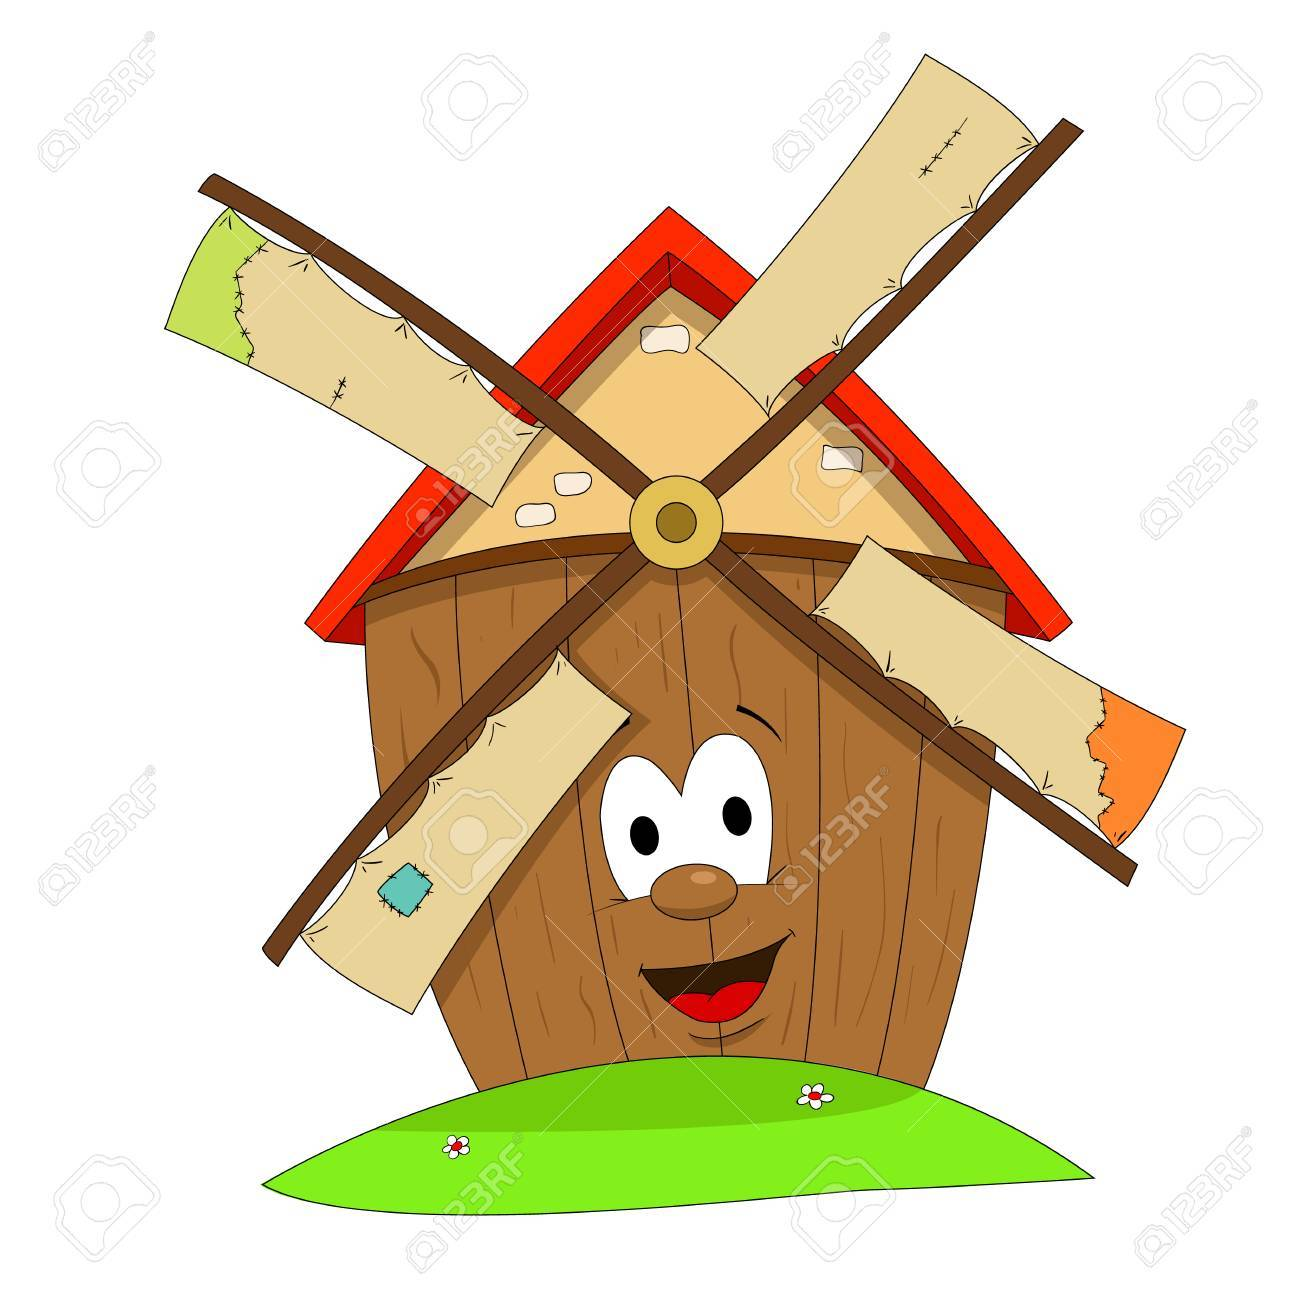 Image result for funny windmill